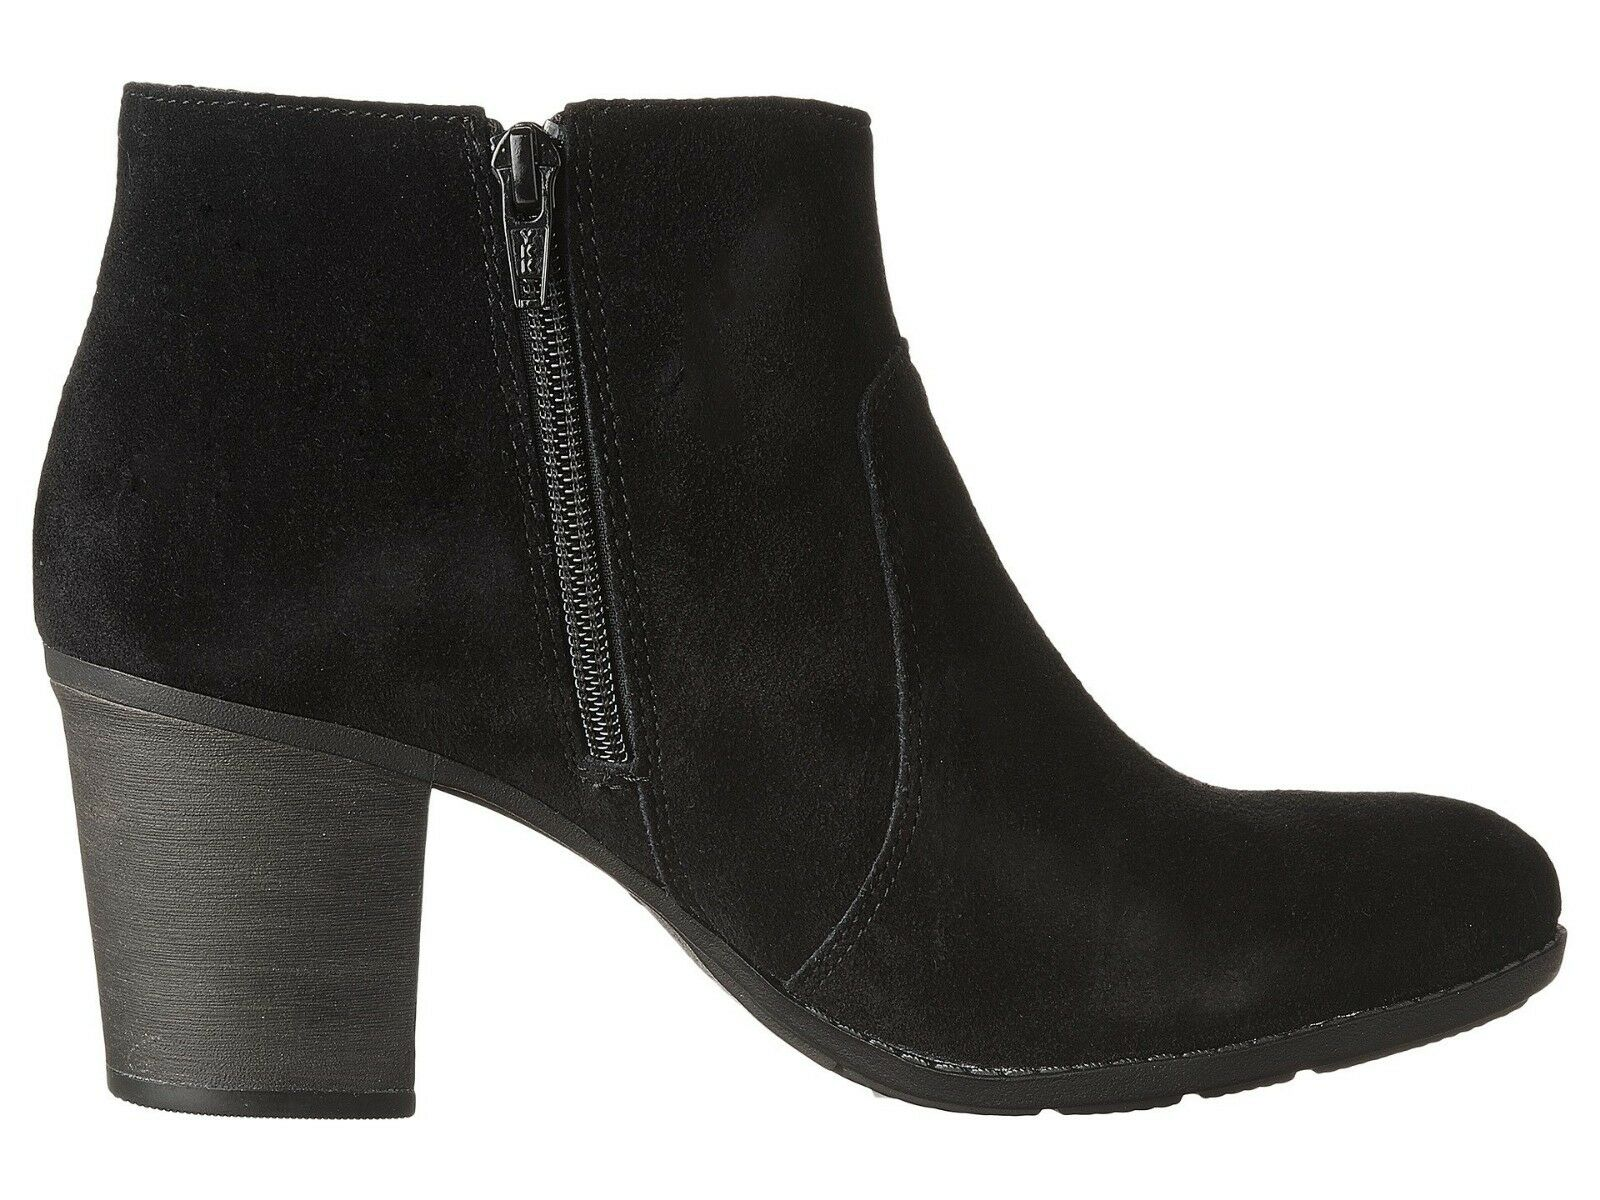 NEW Damenschuhe CLARKS SIDE COLLECTION ENFIELD SENYA BLACK LEATHER SUEDE SIDE CLARKS ZIPPER Stiefel b034e2